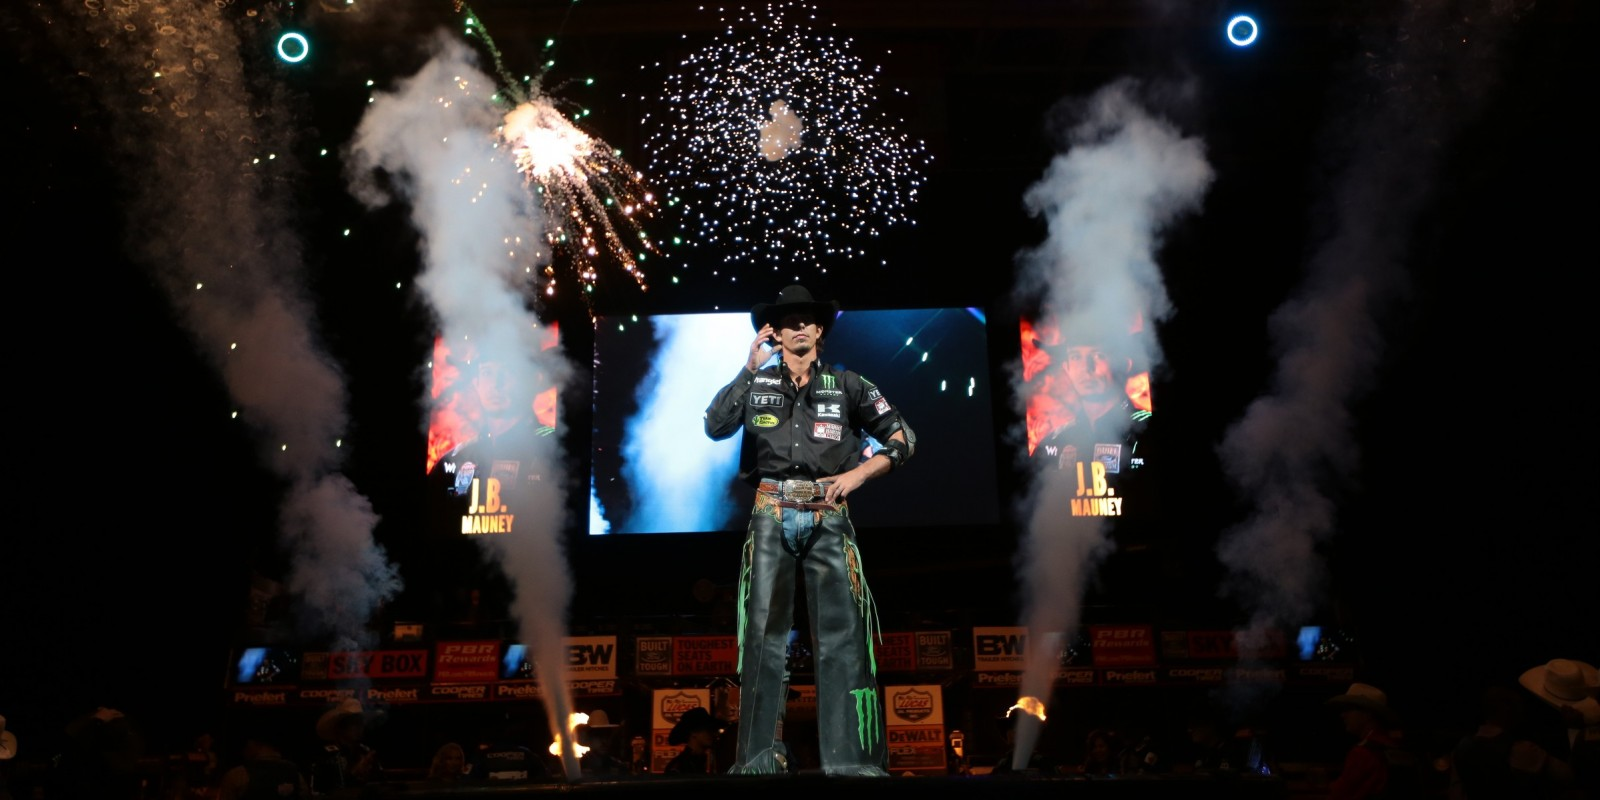 JB Mauney in the opening during the second round of the San Jose Built Ford Tough series PBR